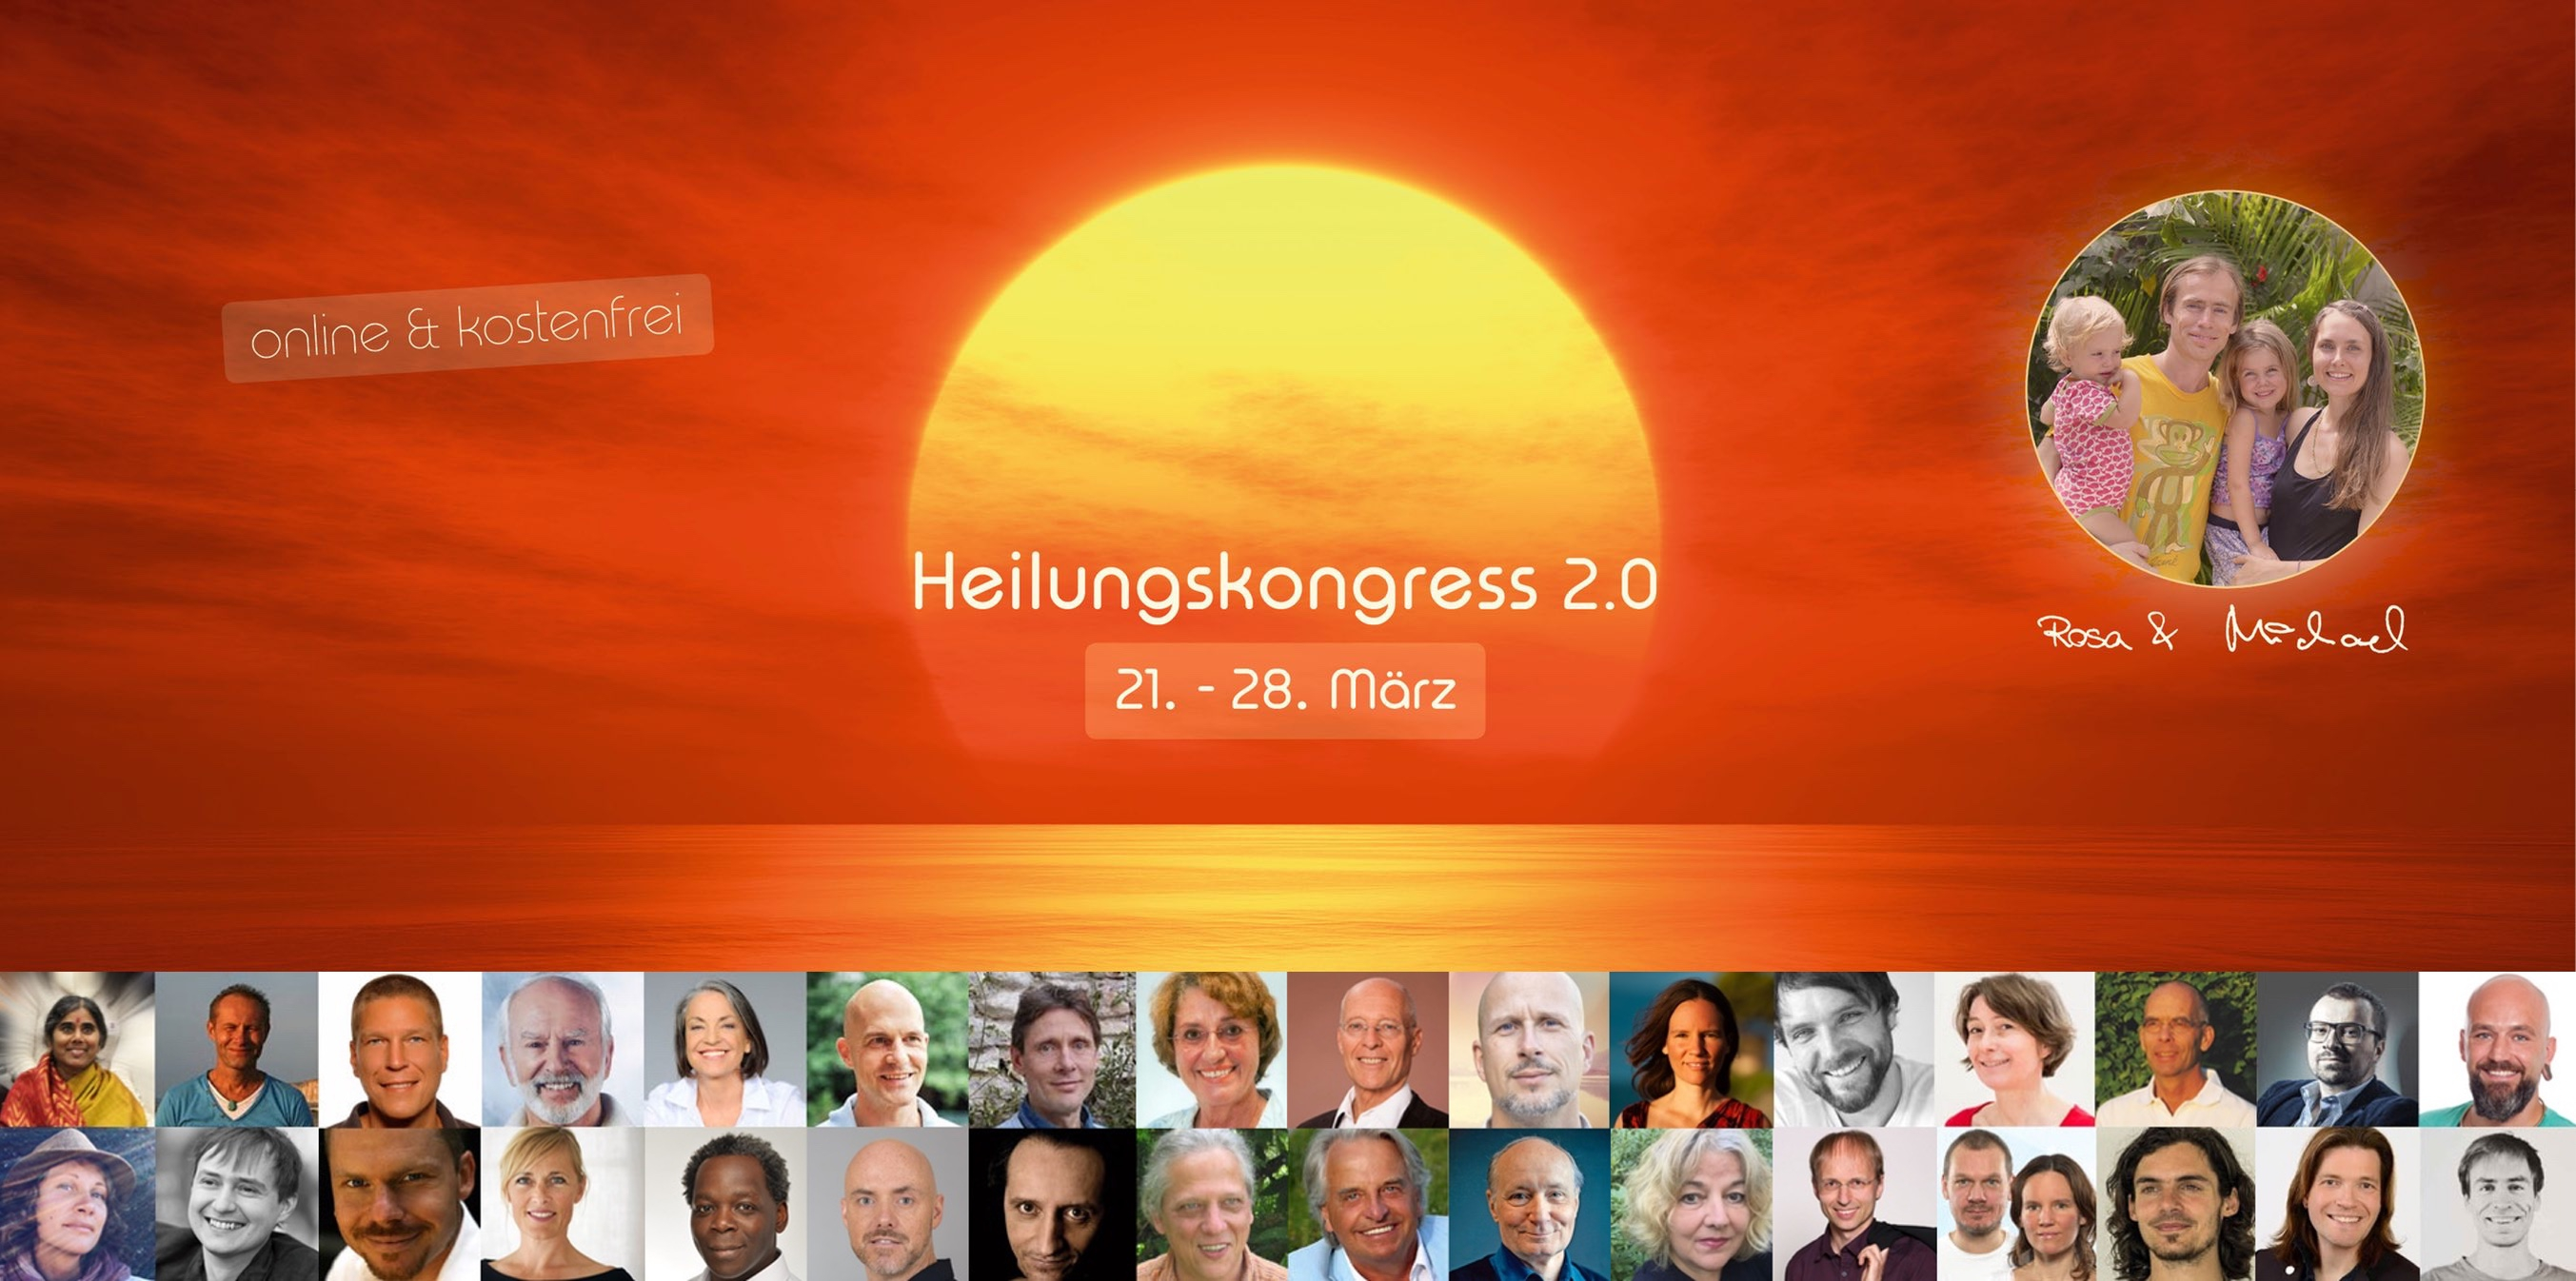 Heilungskongress 2.0